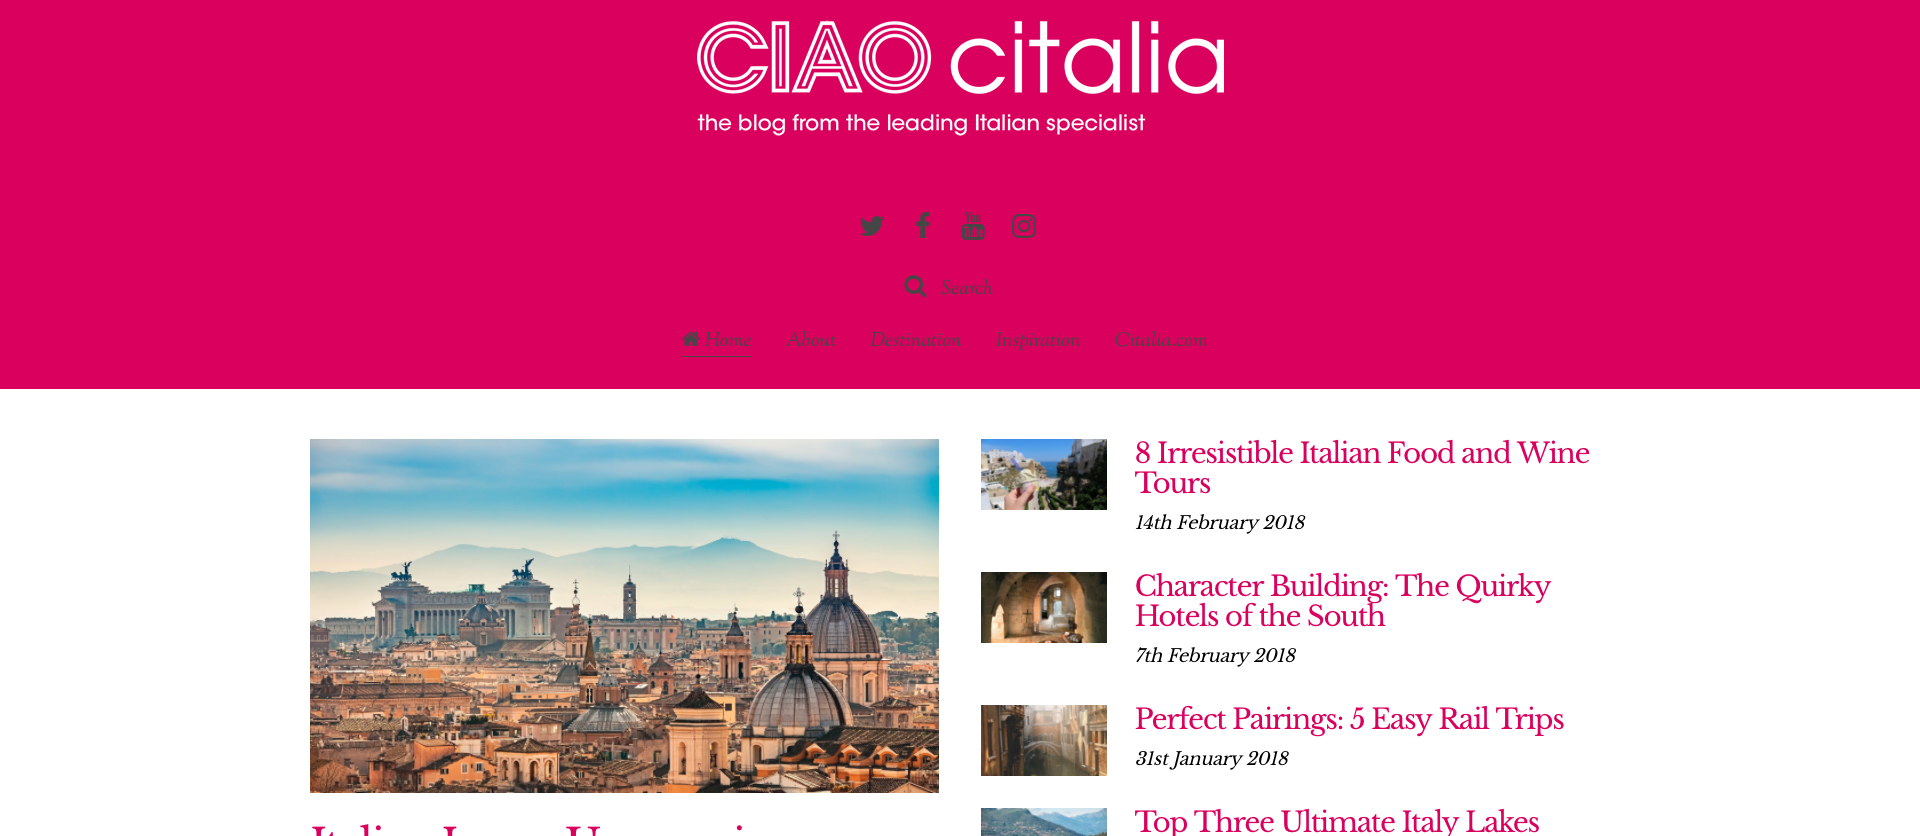 New Ciao Citalia Blog Alex Sparasci